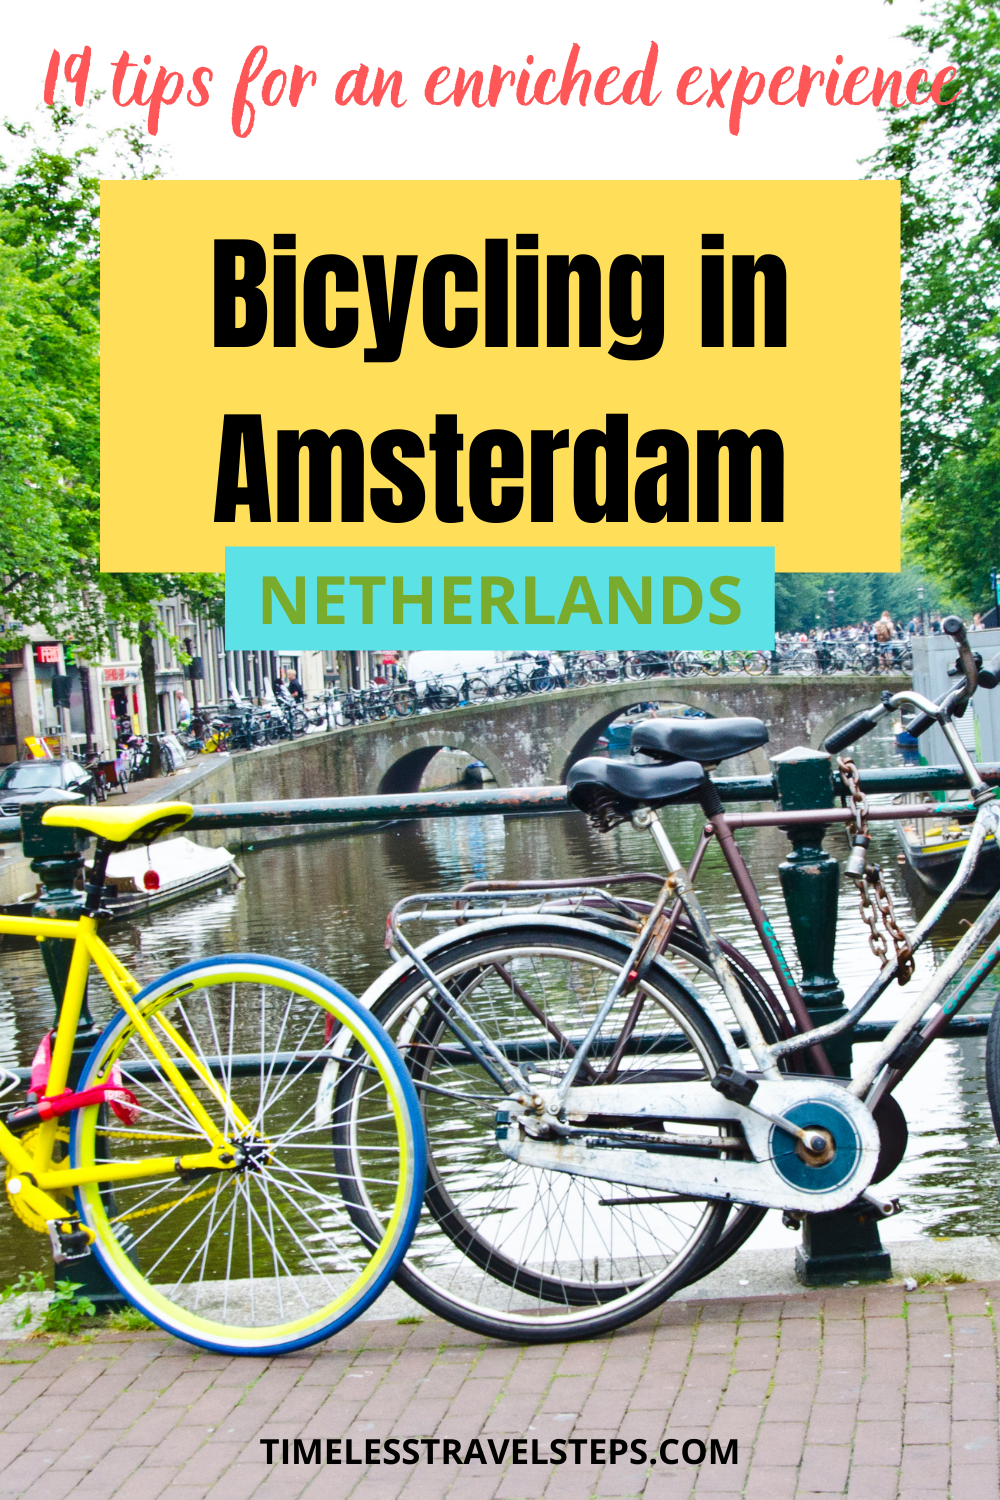 Cycling in Amsterdam is one of the best ways to experience the Dutch culture. However, don't imitate the Amsterdammers! Here are 19 tips for an enriched cycling experience in the city of the free! |Cycling in Amsterdam | What to do when cycling in Amsterdam | Amsterdam tips | Visit Amsterdam | Renting a bike in Amsterdam | Cycling tips in Amsterdam | Can tourists cycle in Amsterdam | Explore hidden gems with a cycle tour | Cycling independently and what you need to know | Explore Amsterdam with a bike | via @GGeorgina_timelesstravelsteps/